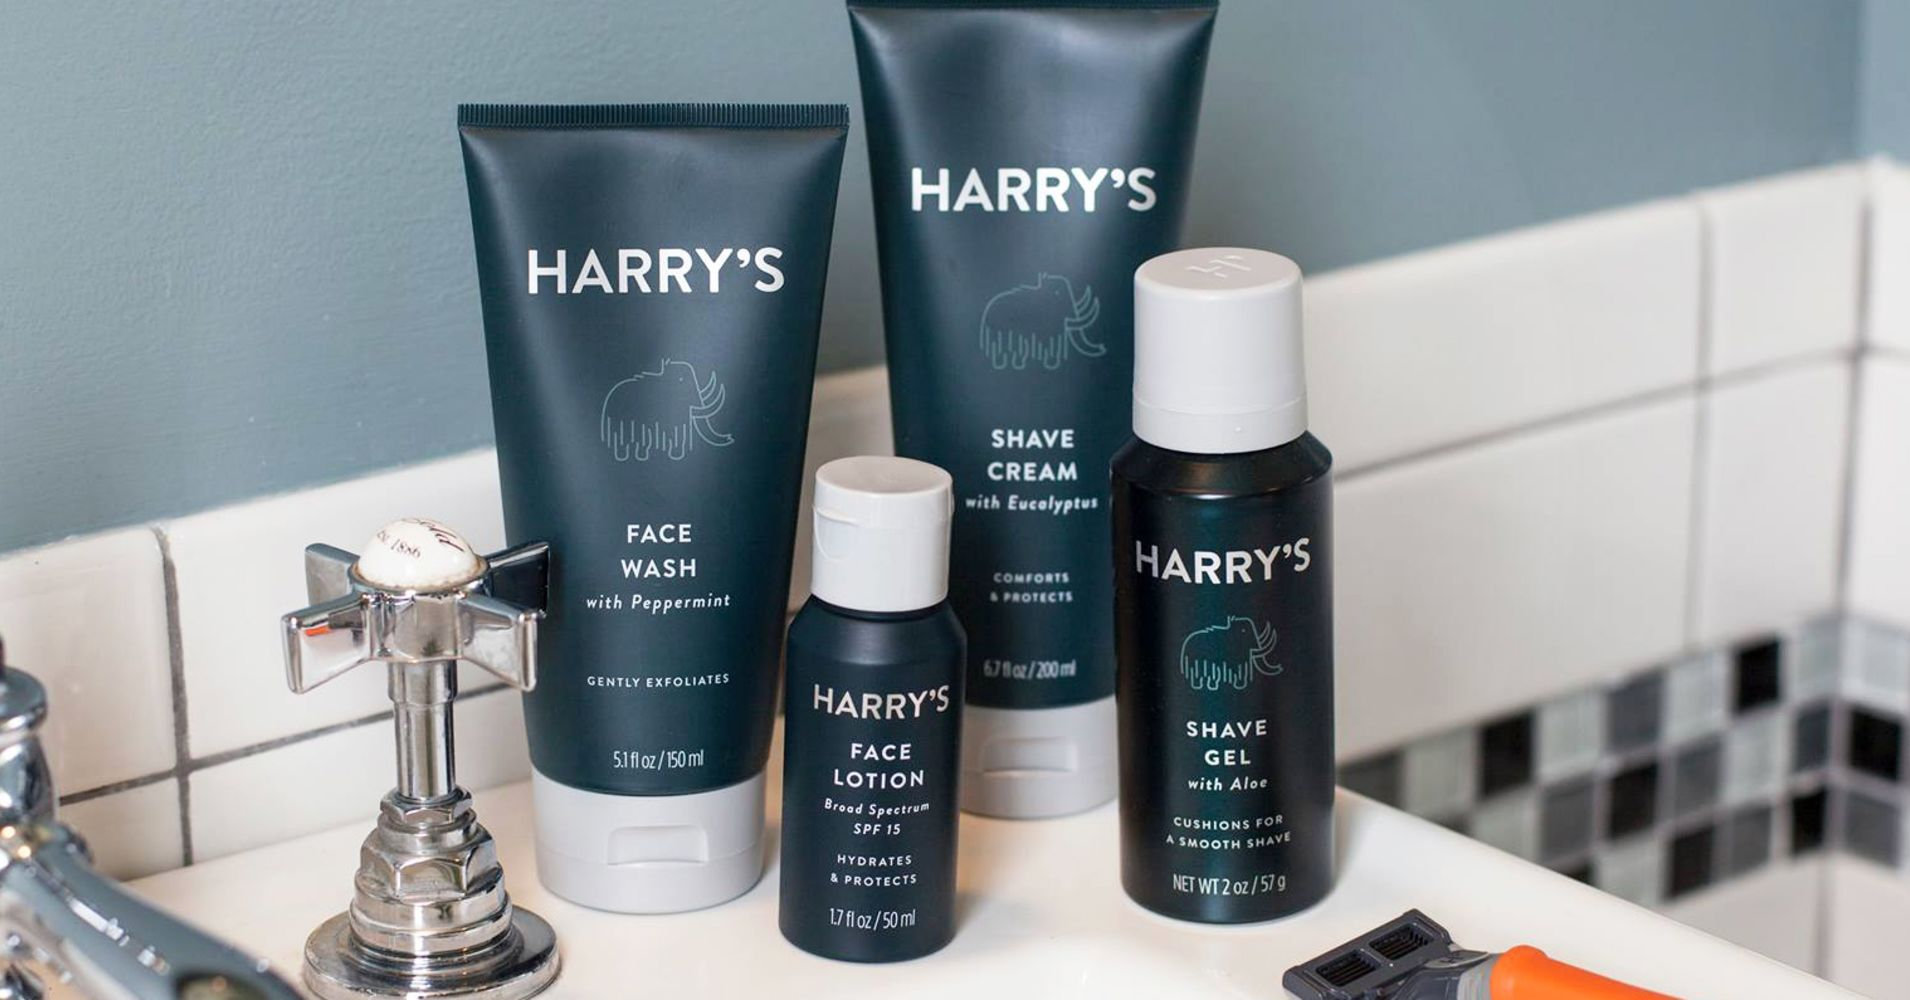 Don't compare Harry's to Unilever's Dollar Shave Club deal: Edgewell CEO